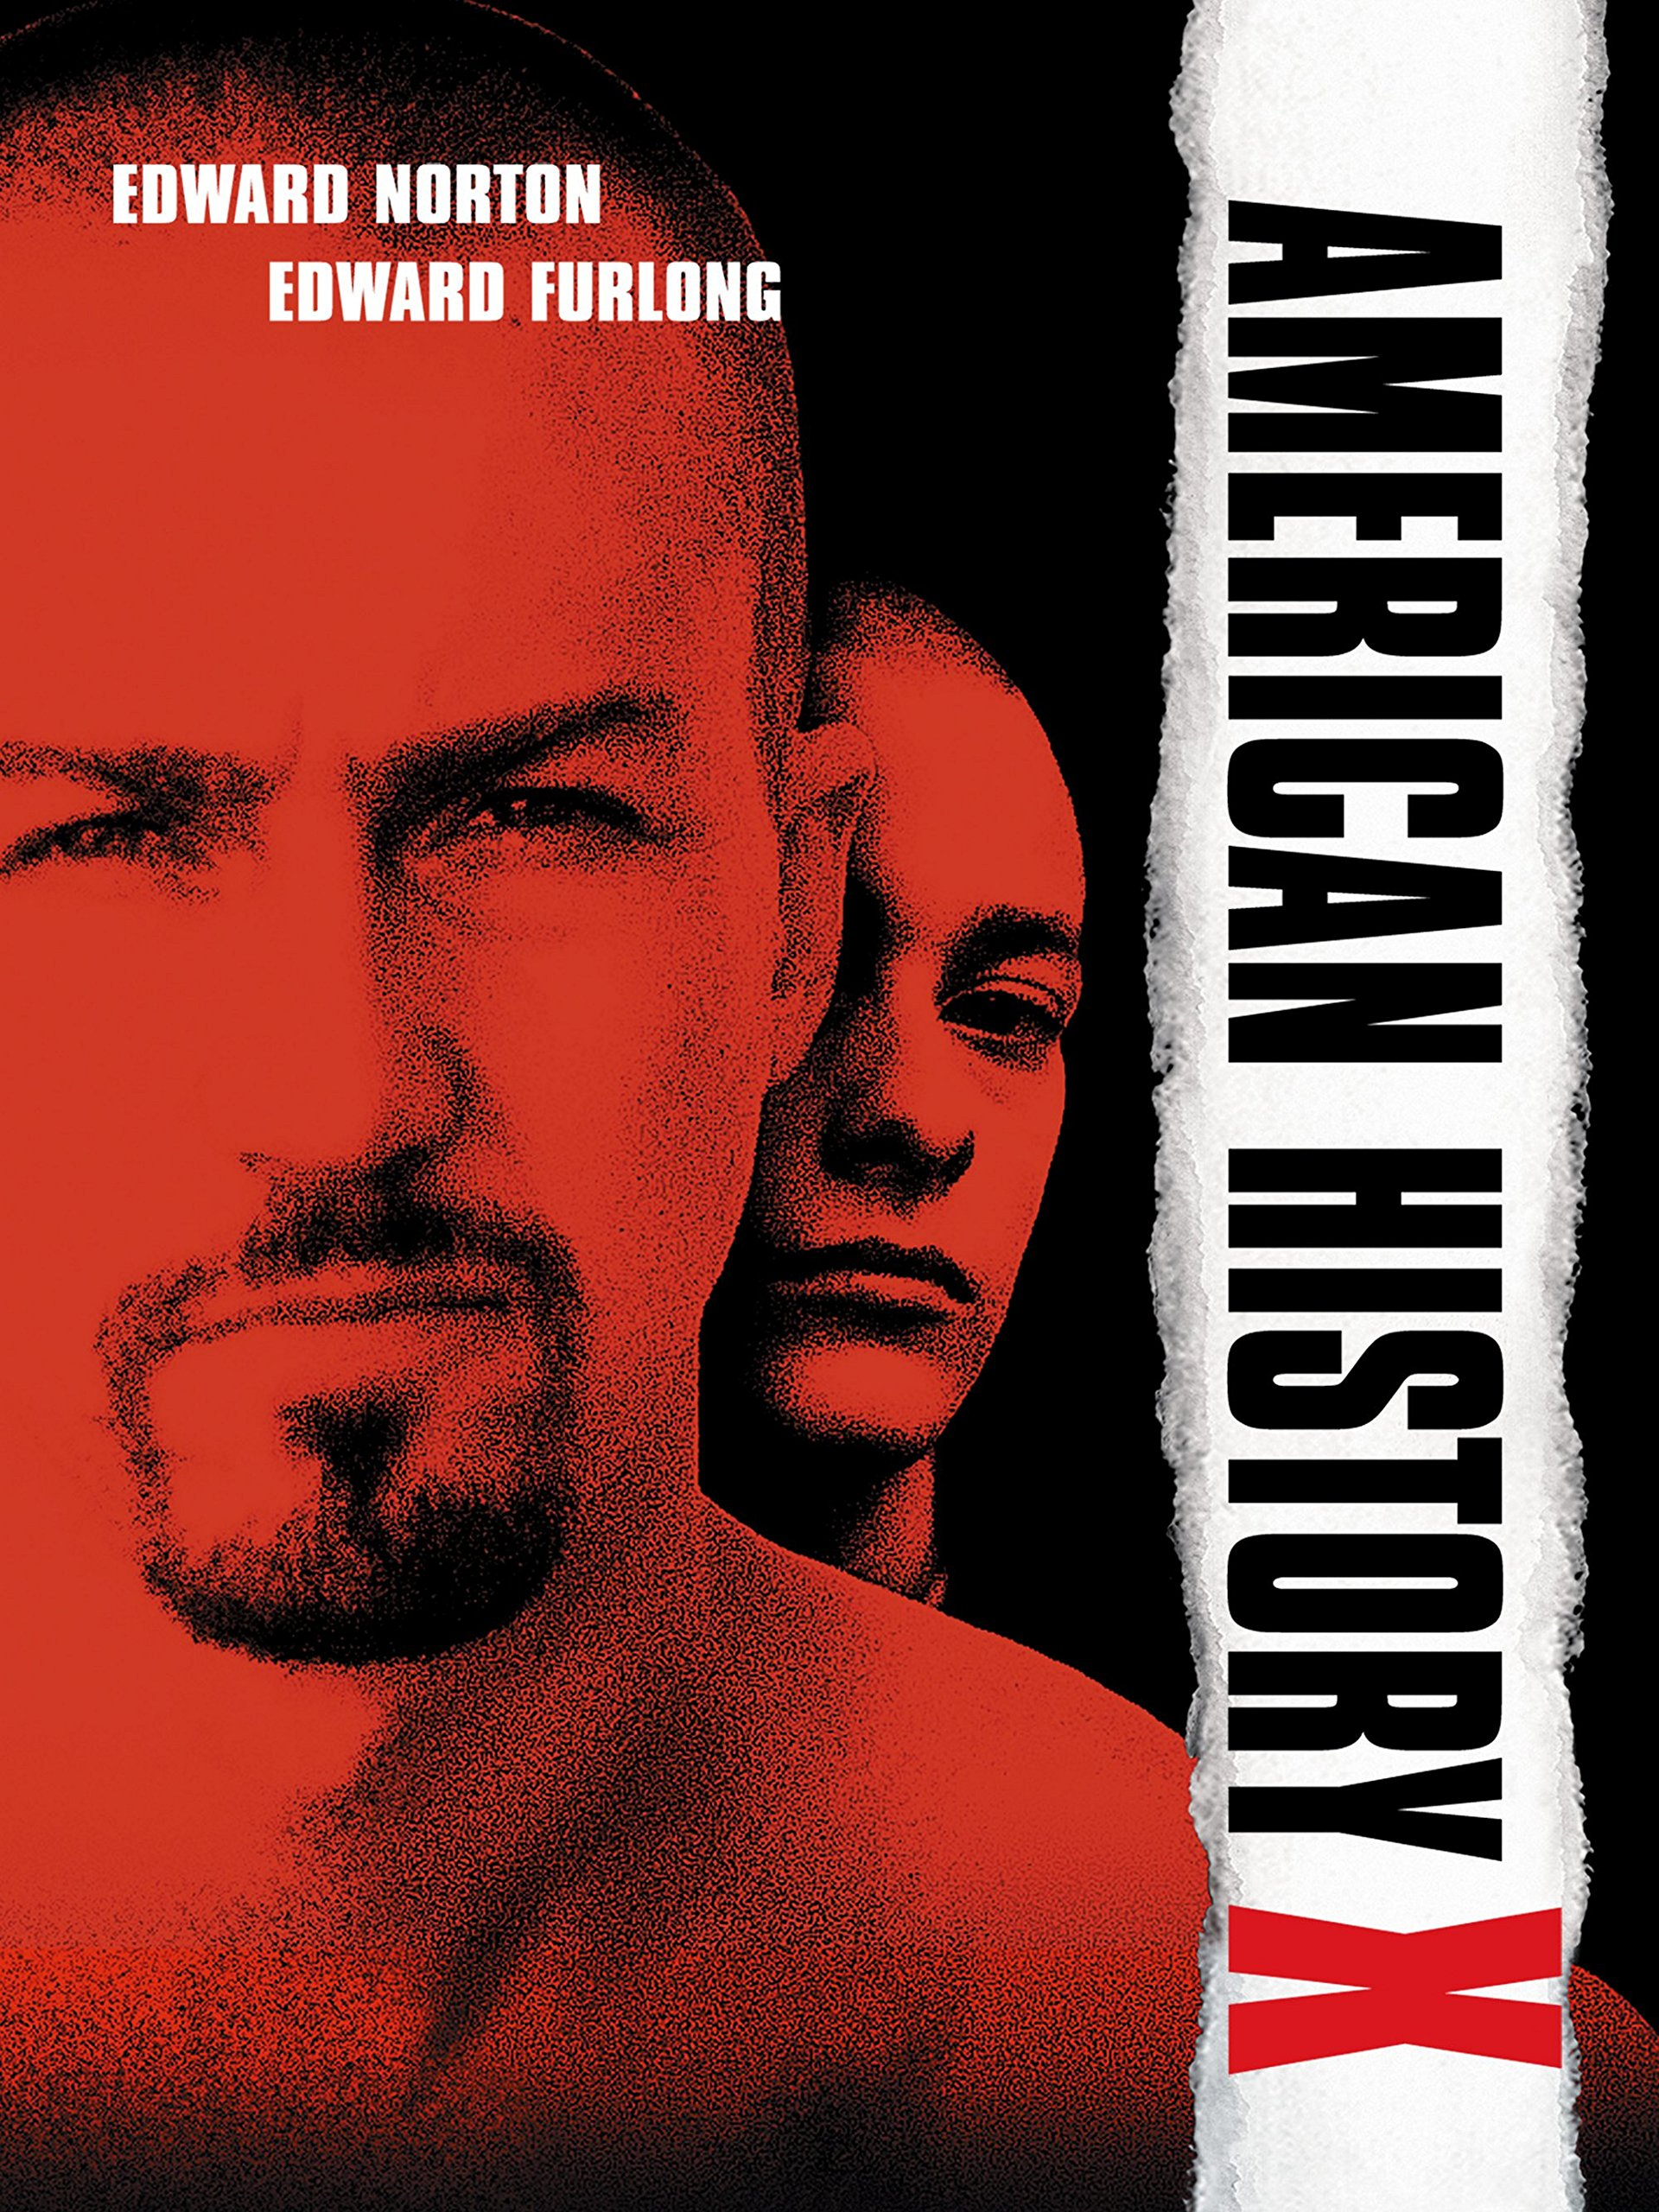 Edward norton american history x diet and workout